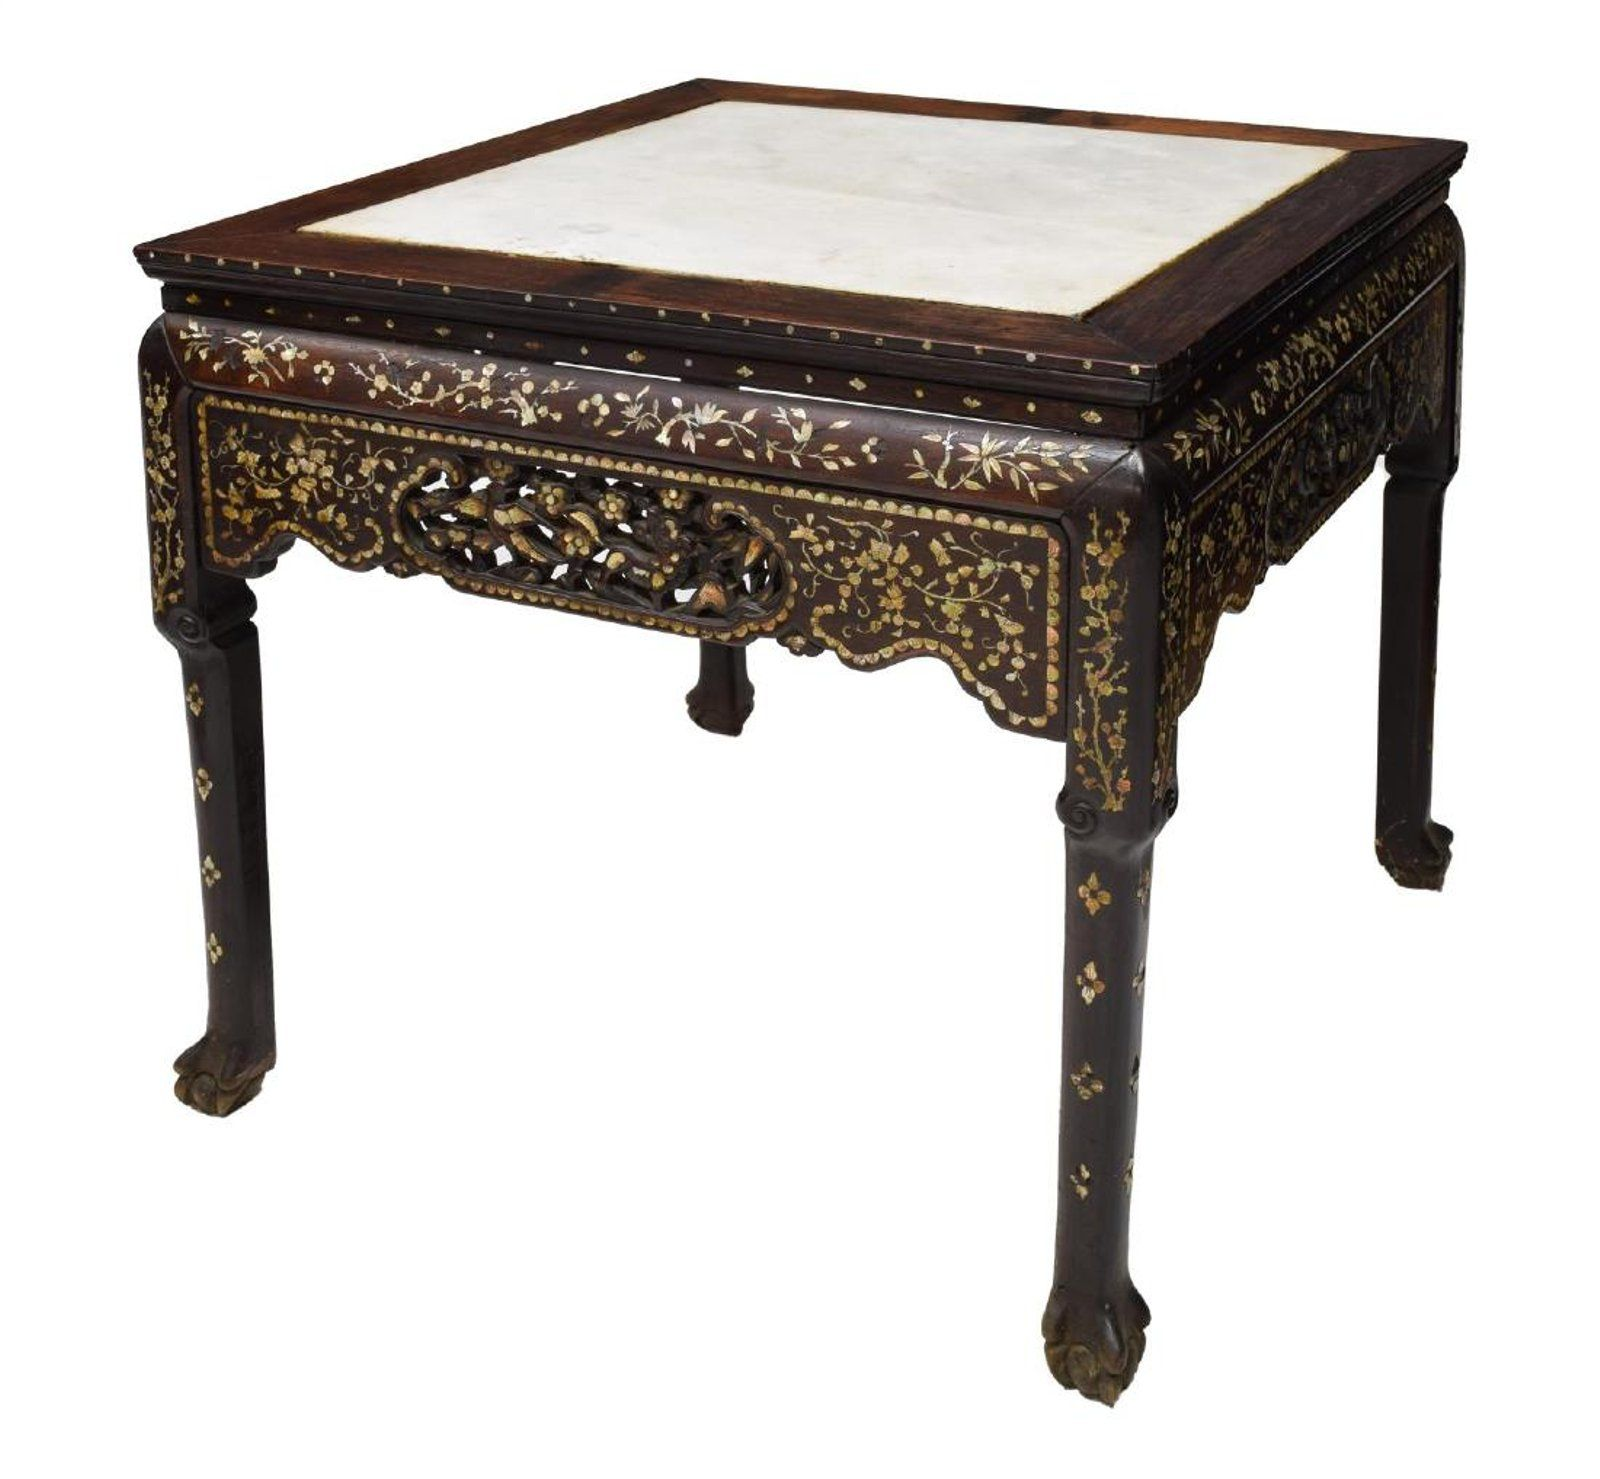 CHINESE MOTHER OF PEARL INLAID MARBLE TOP TABLE